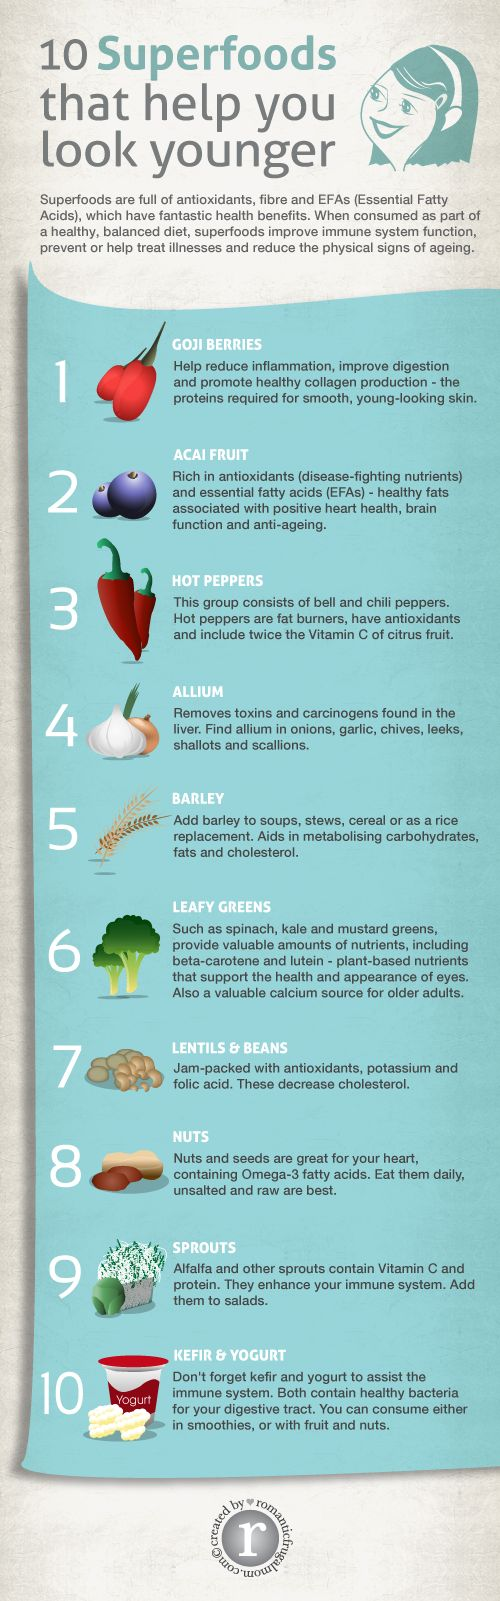 superfoods that help you look younger